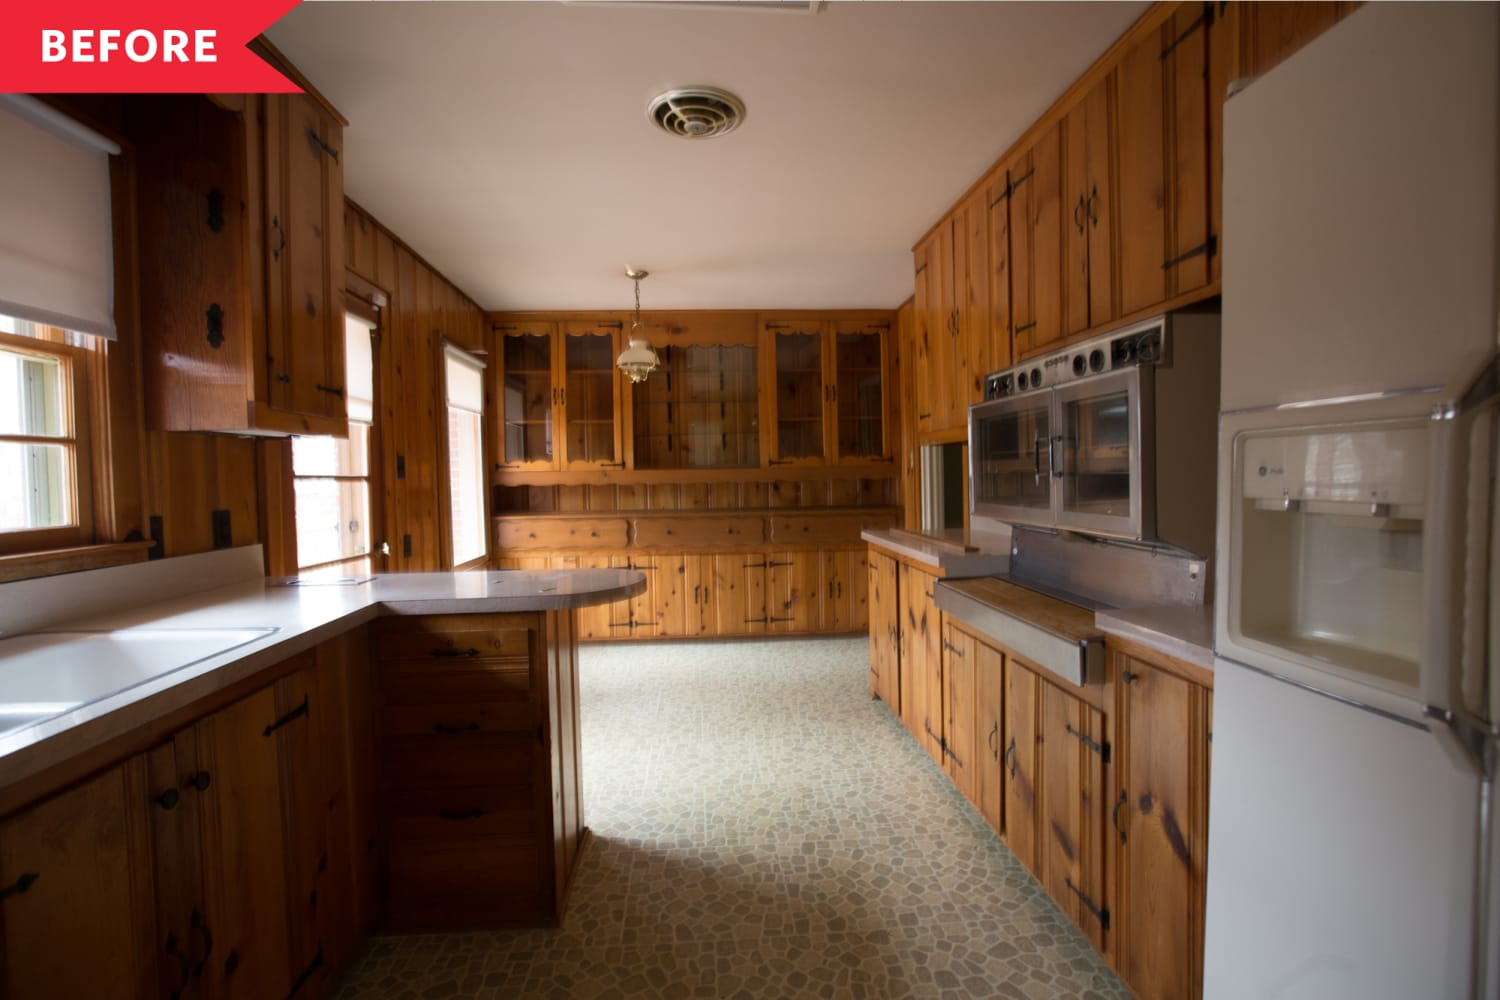 Before & After: Every Room in This House With 'Endless Knotty Pine and Old, Smelly Carpet' Got a Refresh